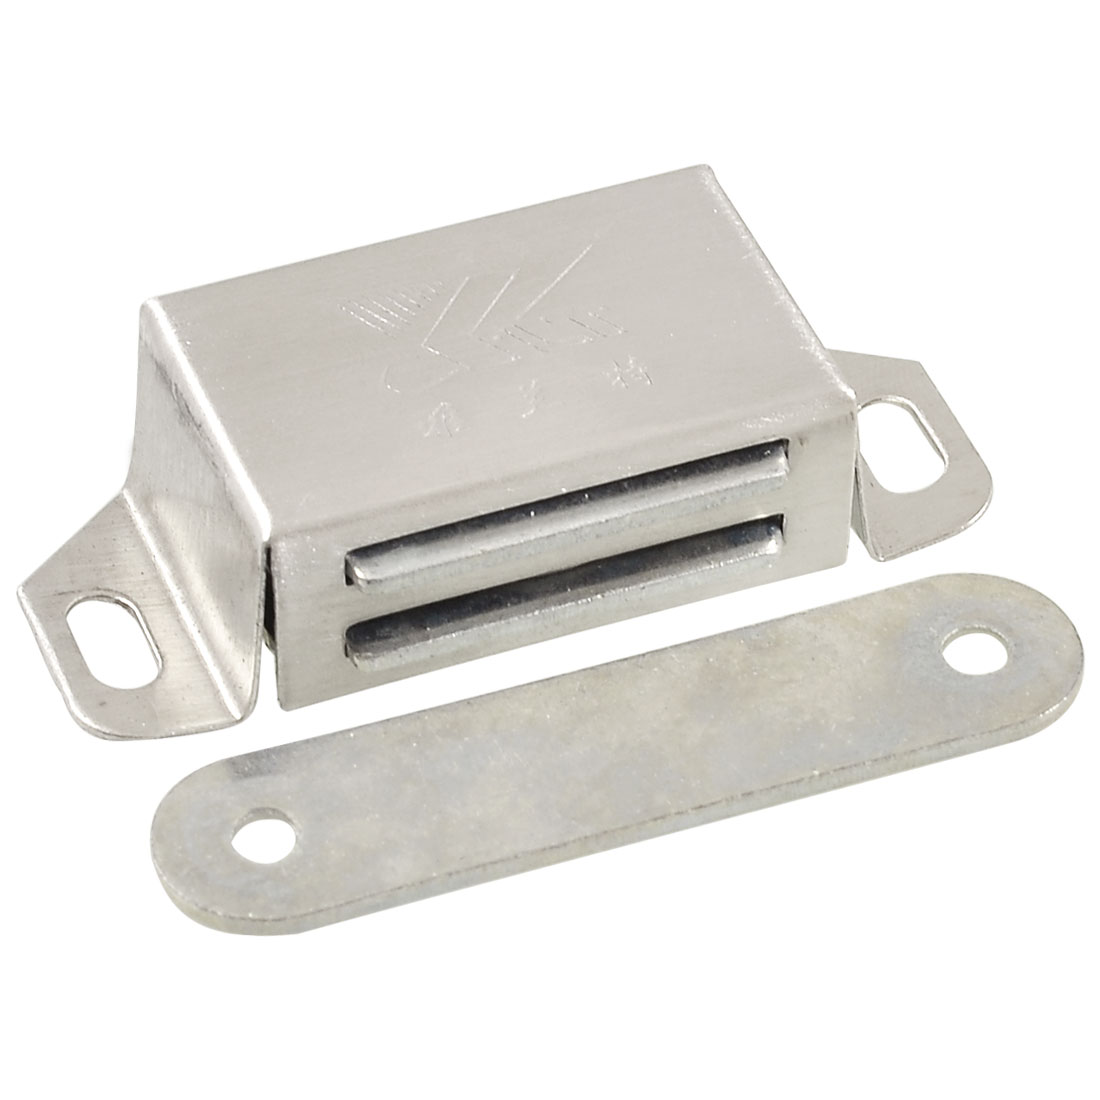 Cupboard 56mm x 25mm x 14mm Magnetic Latch Catch Hardware Part